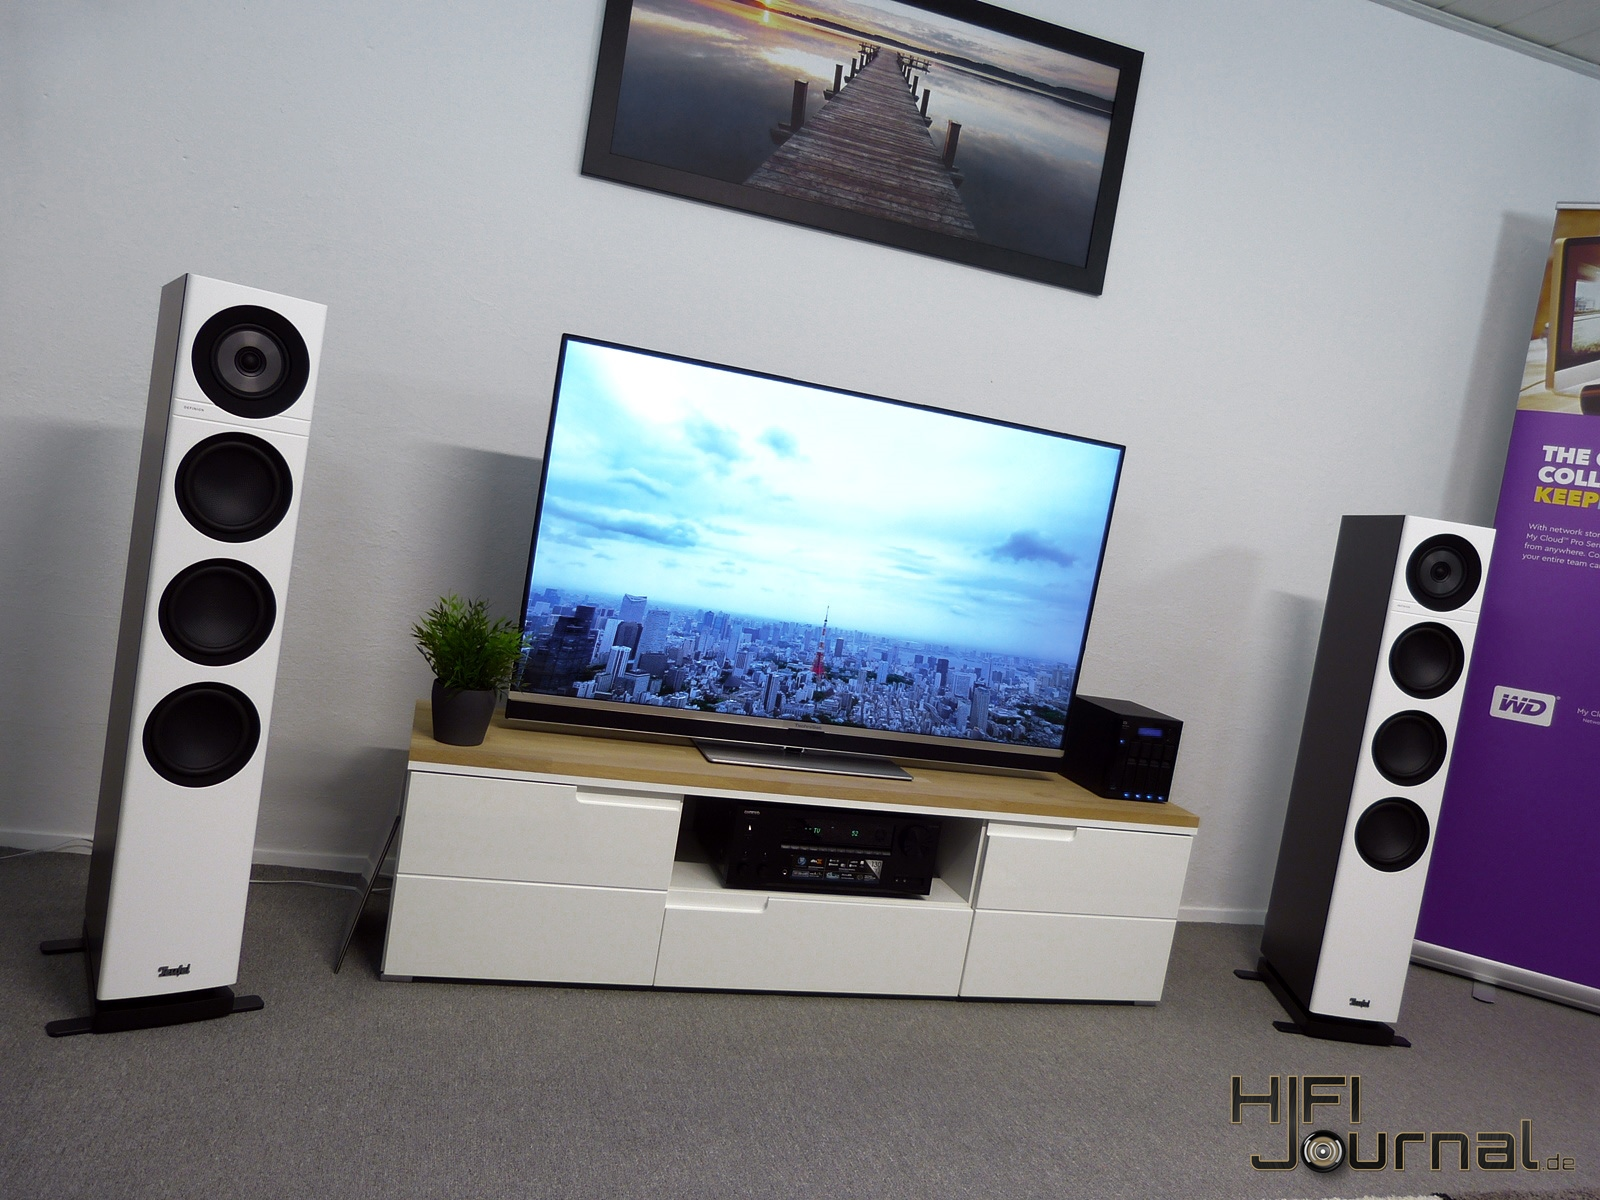 video interview nas systeme im heimkino hifi journal. Black Bedroom Furniture Sets. Home Design Ideas